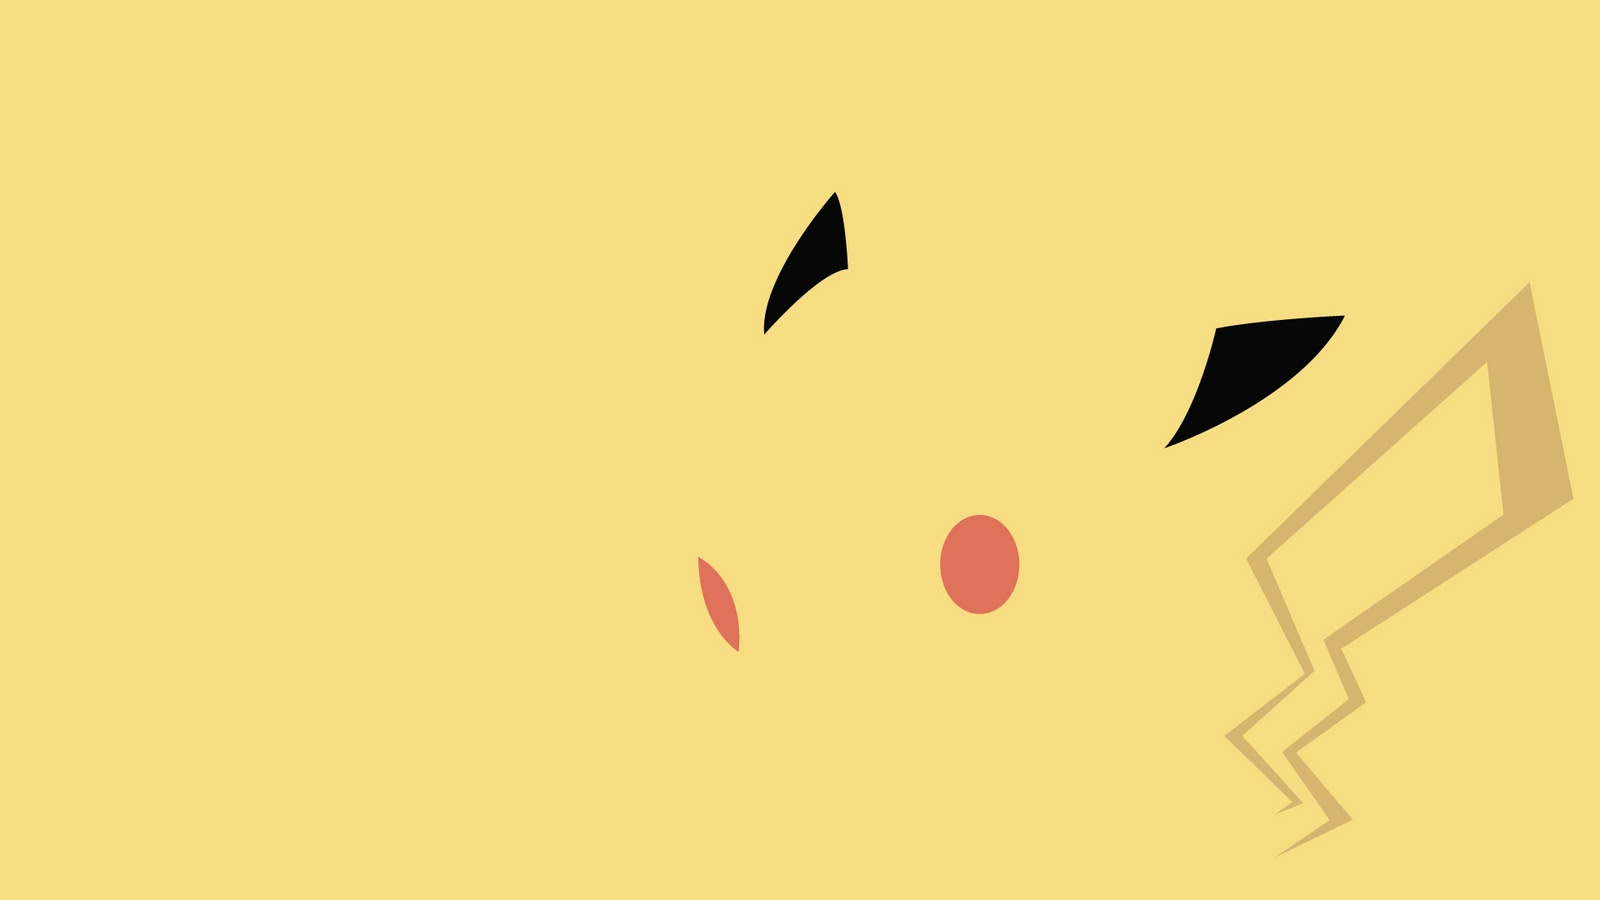 Another-Pikachu-pic-wallpaper-wpc9002279